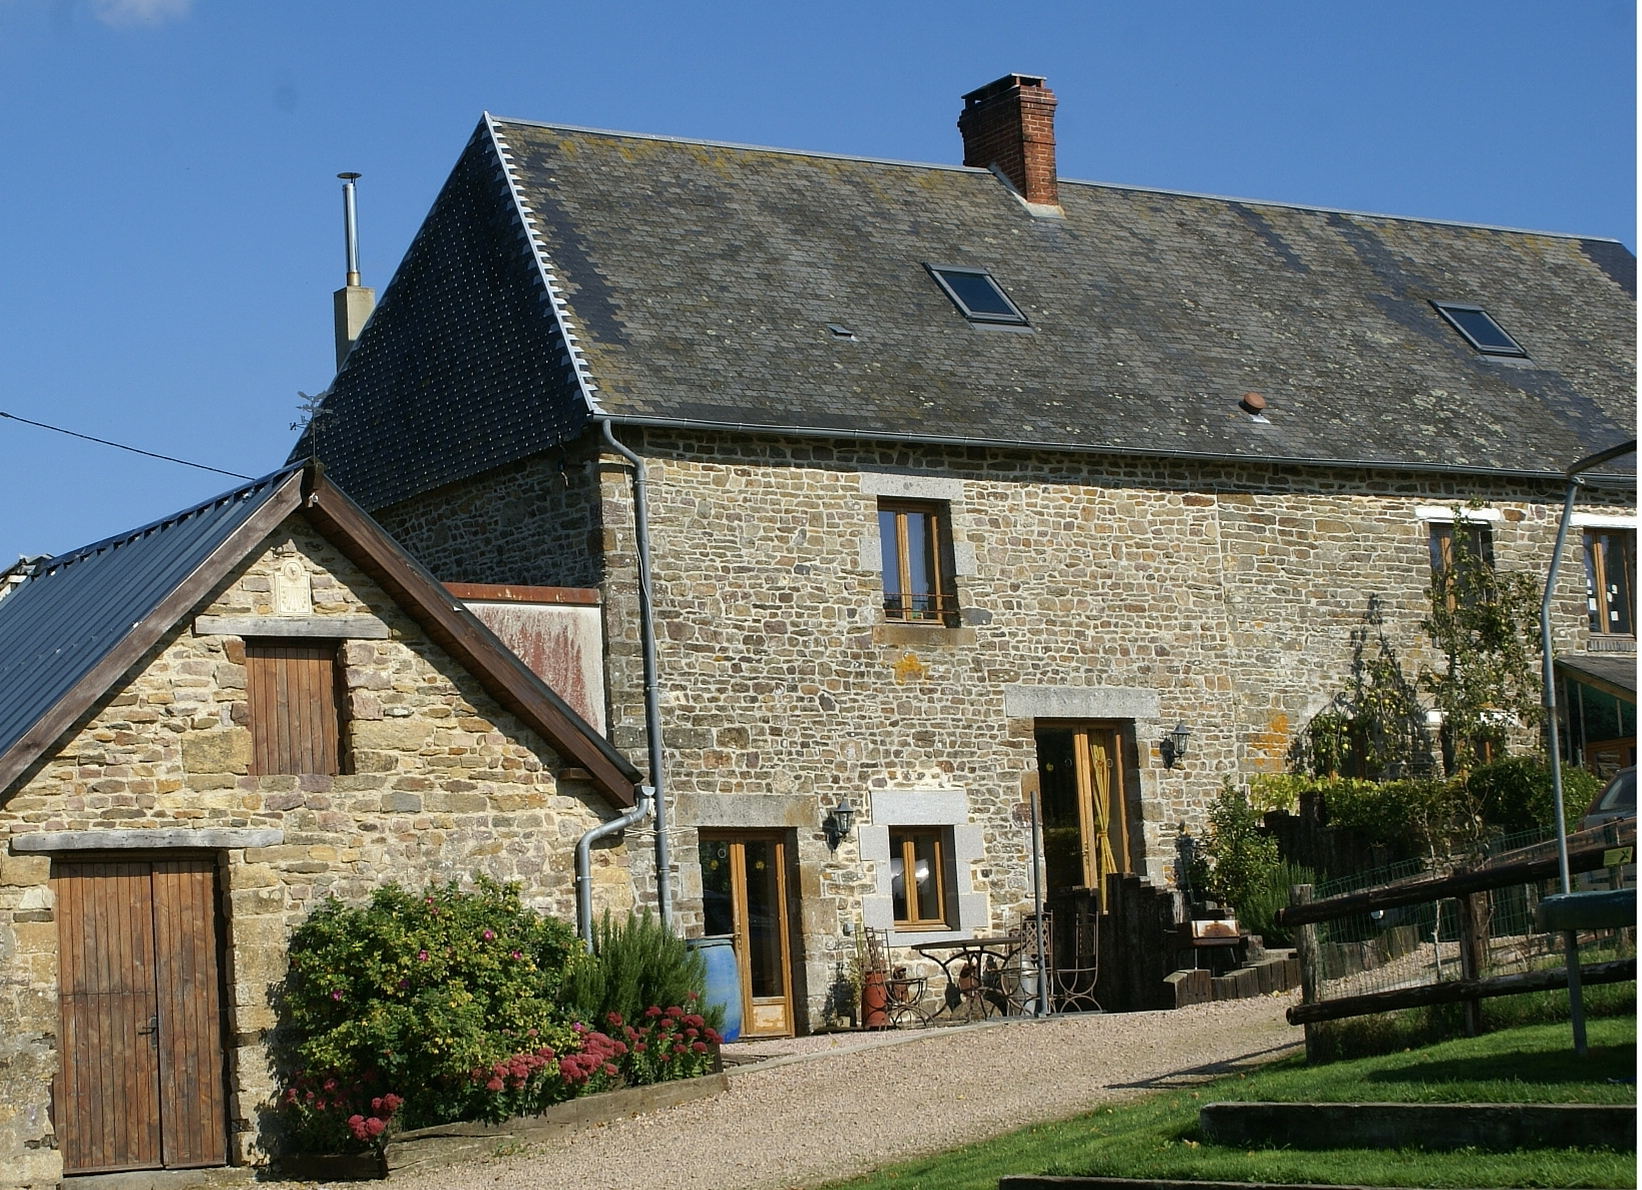 Eco-Gites of Lenault, a holiday cottage in Normandy